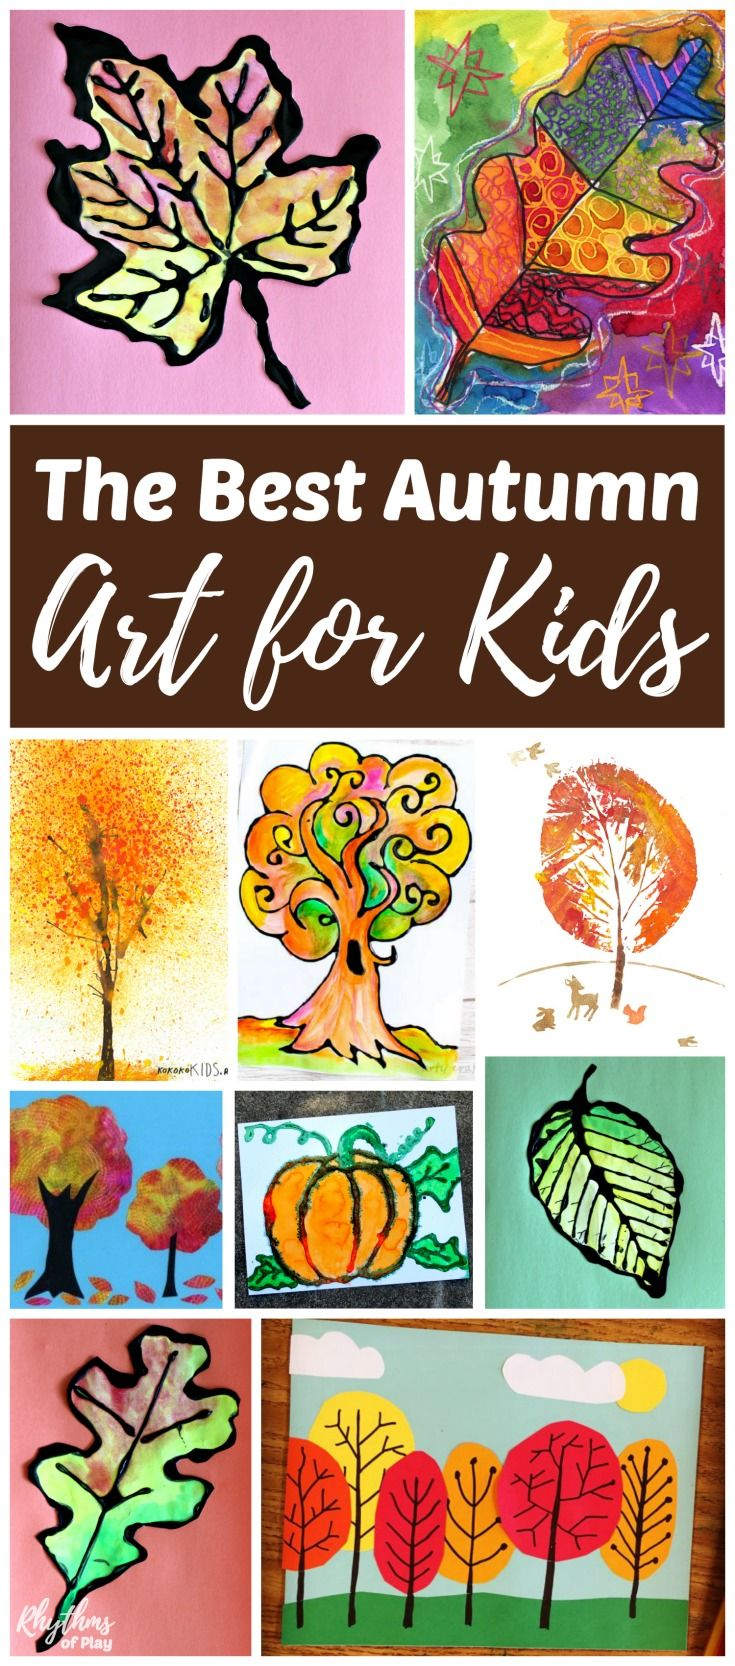 The best fall art projects for kids! Inside you will find easy craft and painting ideas for fall leaves, autumn trees, apples, pumpkins, scare crows, and owls. These creative projects are perfect for an art class at home or school. #fall